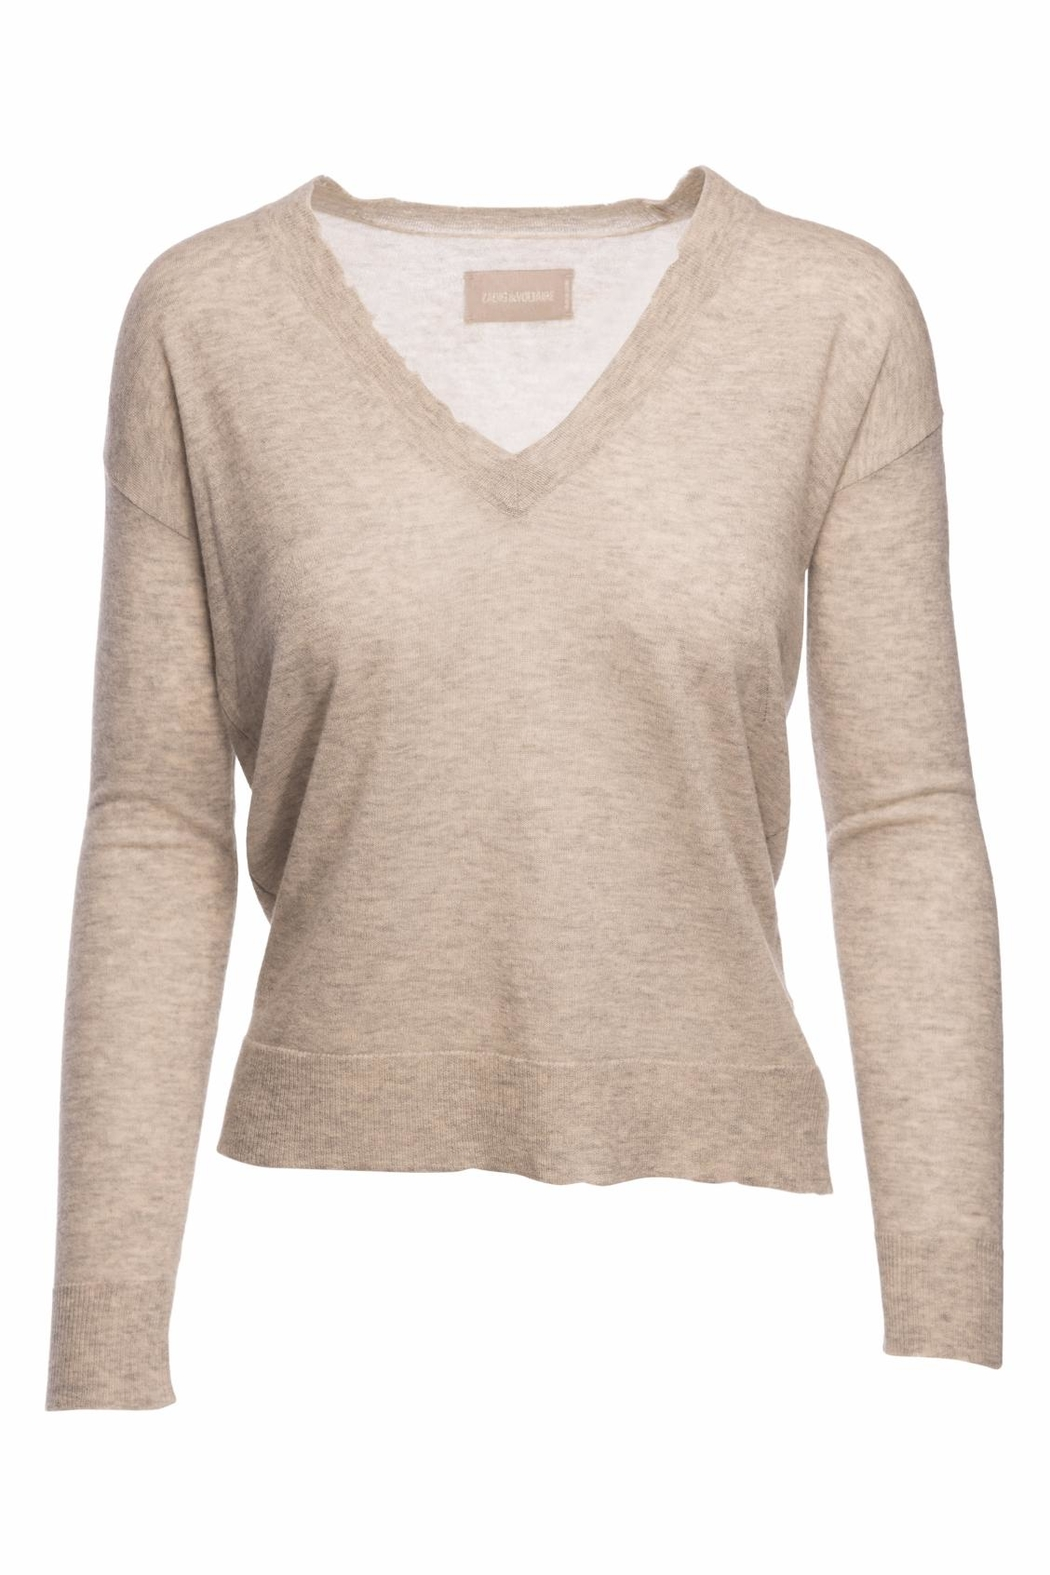 Zadig & Voltaire Happy Cashmere Sweater - Main Image